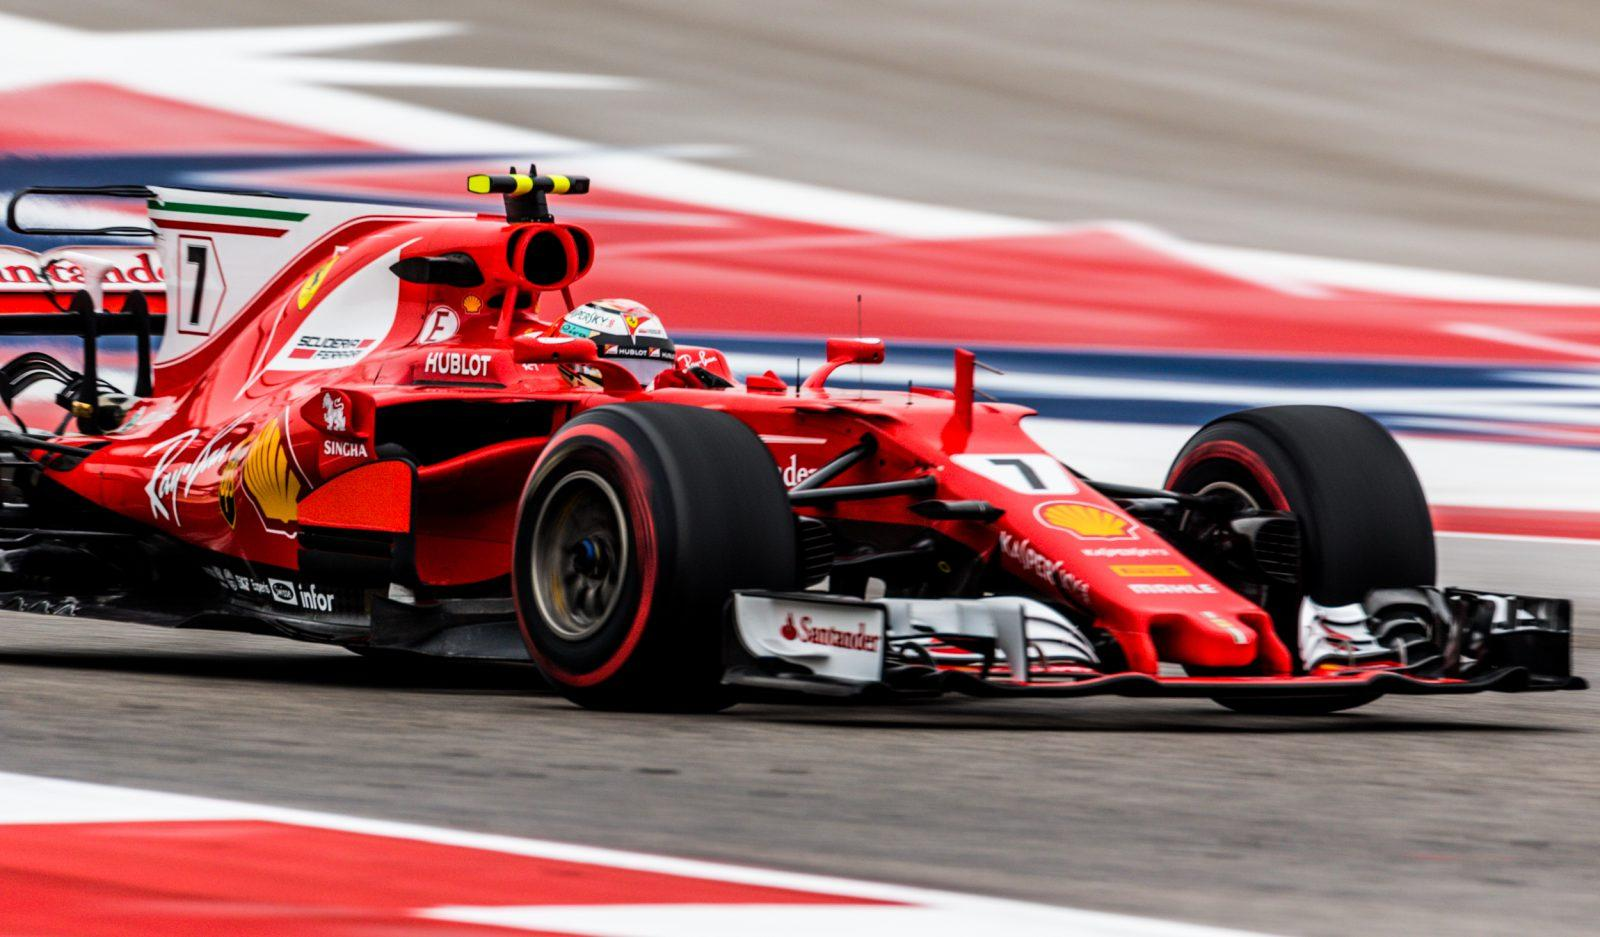 How Much Does A Formula 1 Car Cost? Knowing the Unknown